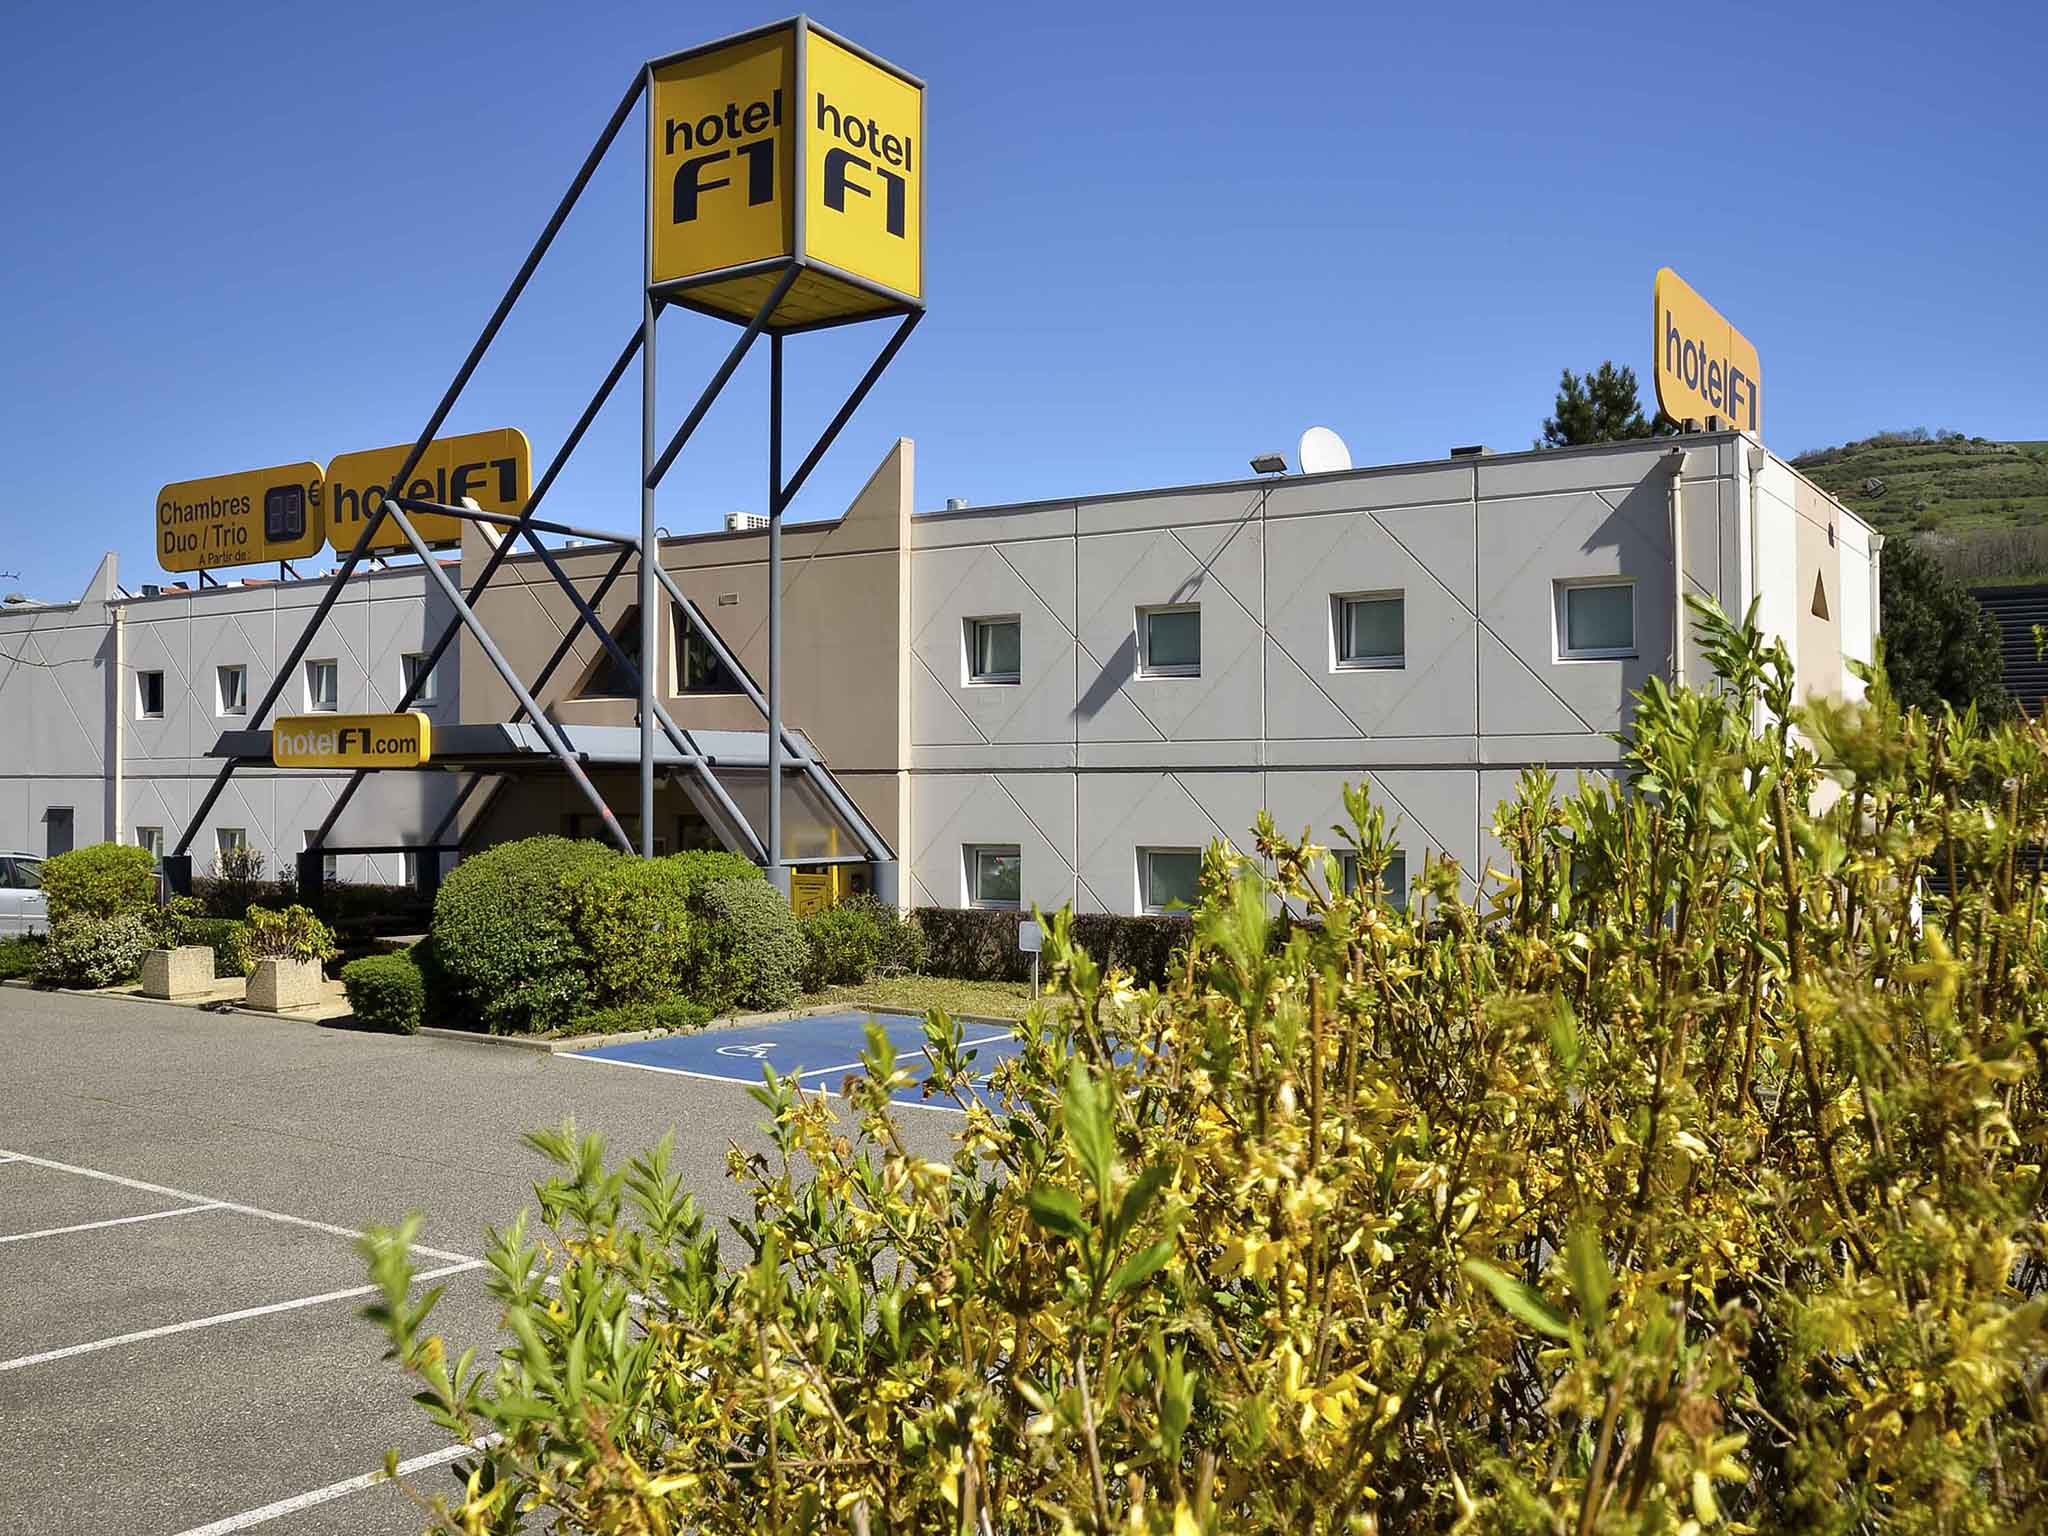 Hotel - hotelF1 Clermont Ferrand Issoire Coudes